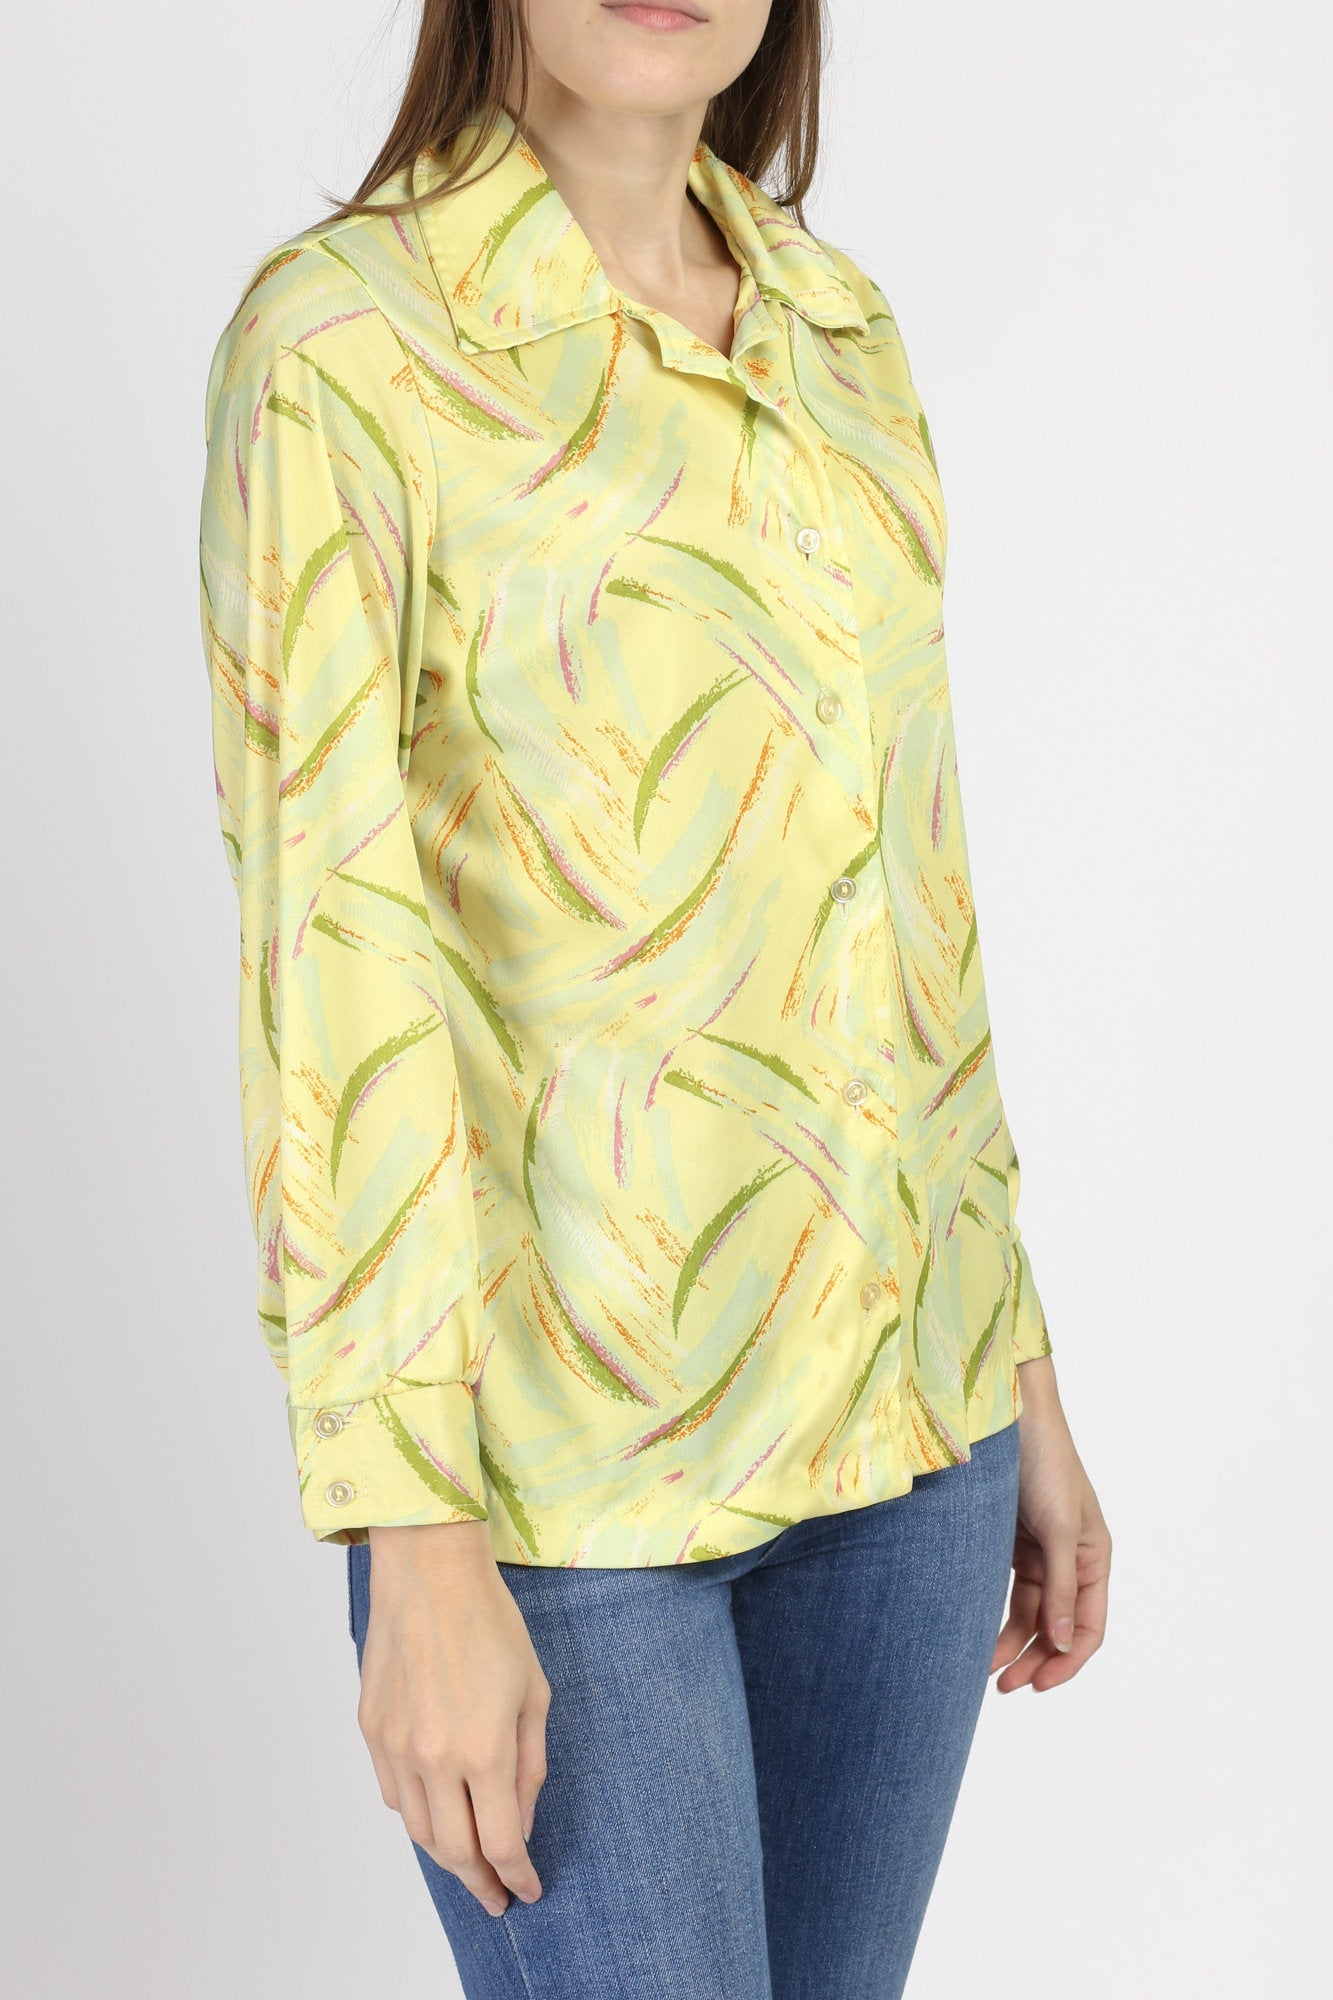 70s Abstract Print Disco Blouse - Large